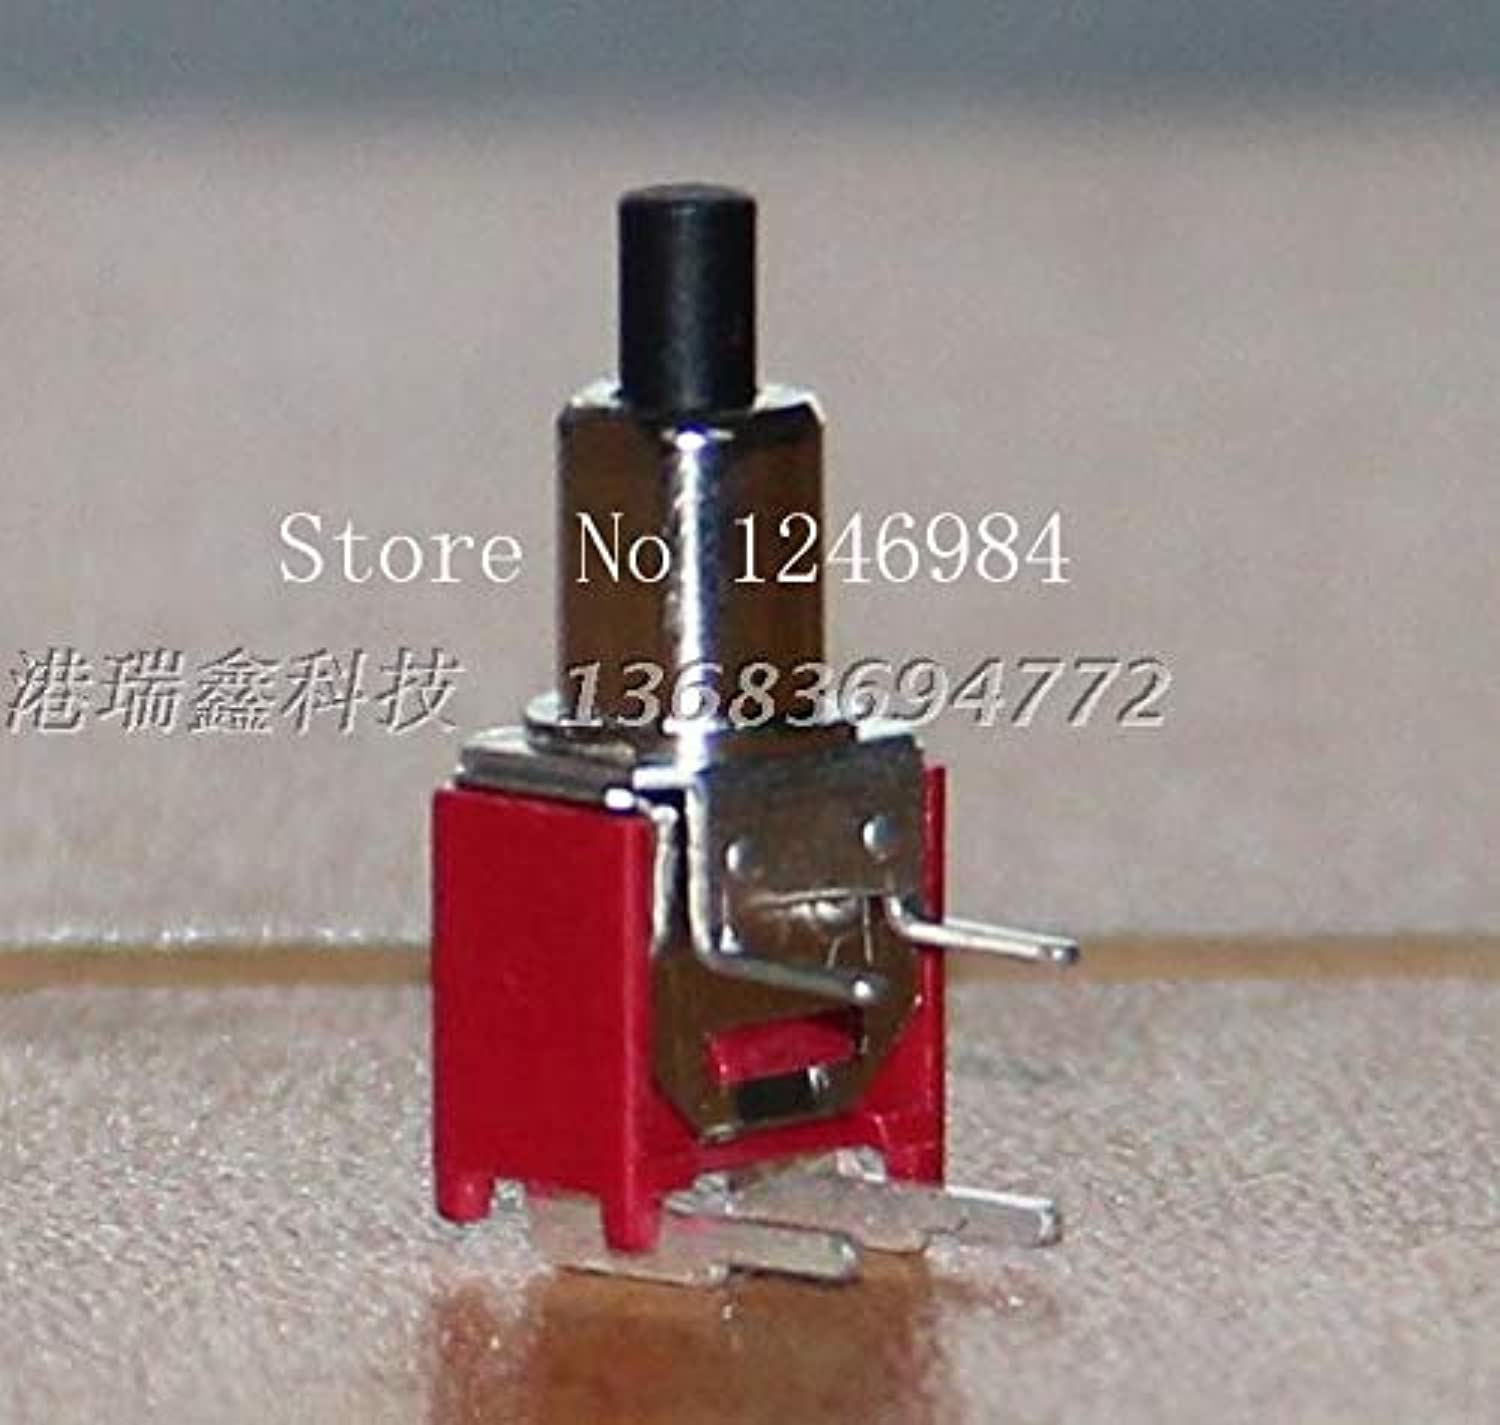 [SA]TS21A Trigger Legs are Bent Single Small Toggle Button Reset Switch Normally Open Switch M5.08 Taiwan SH50pcs lot